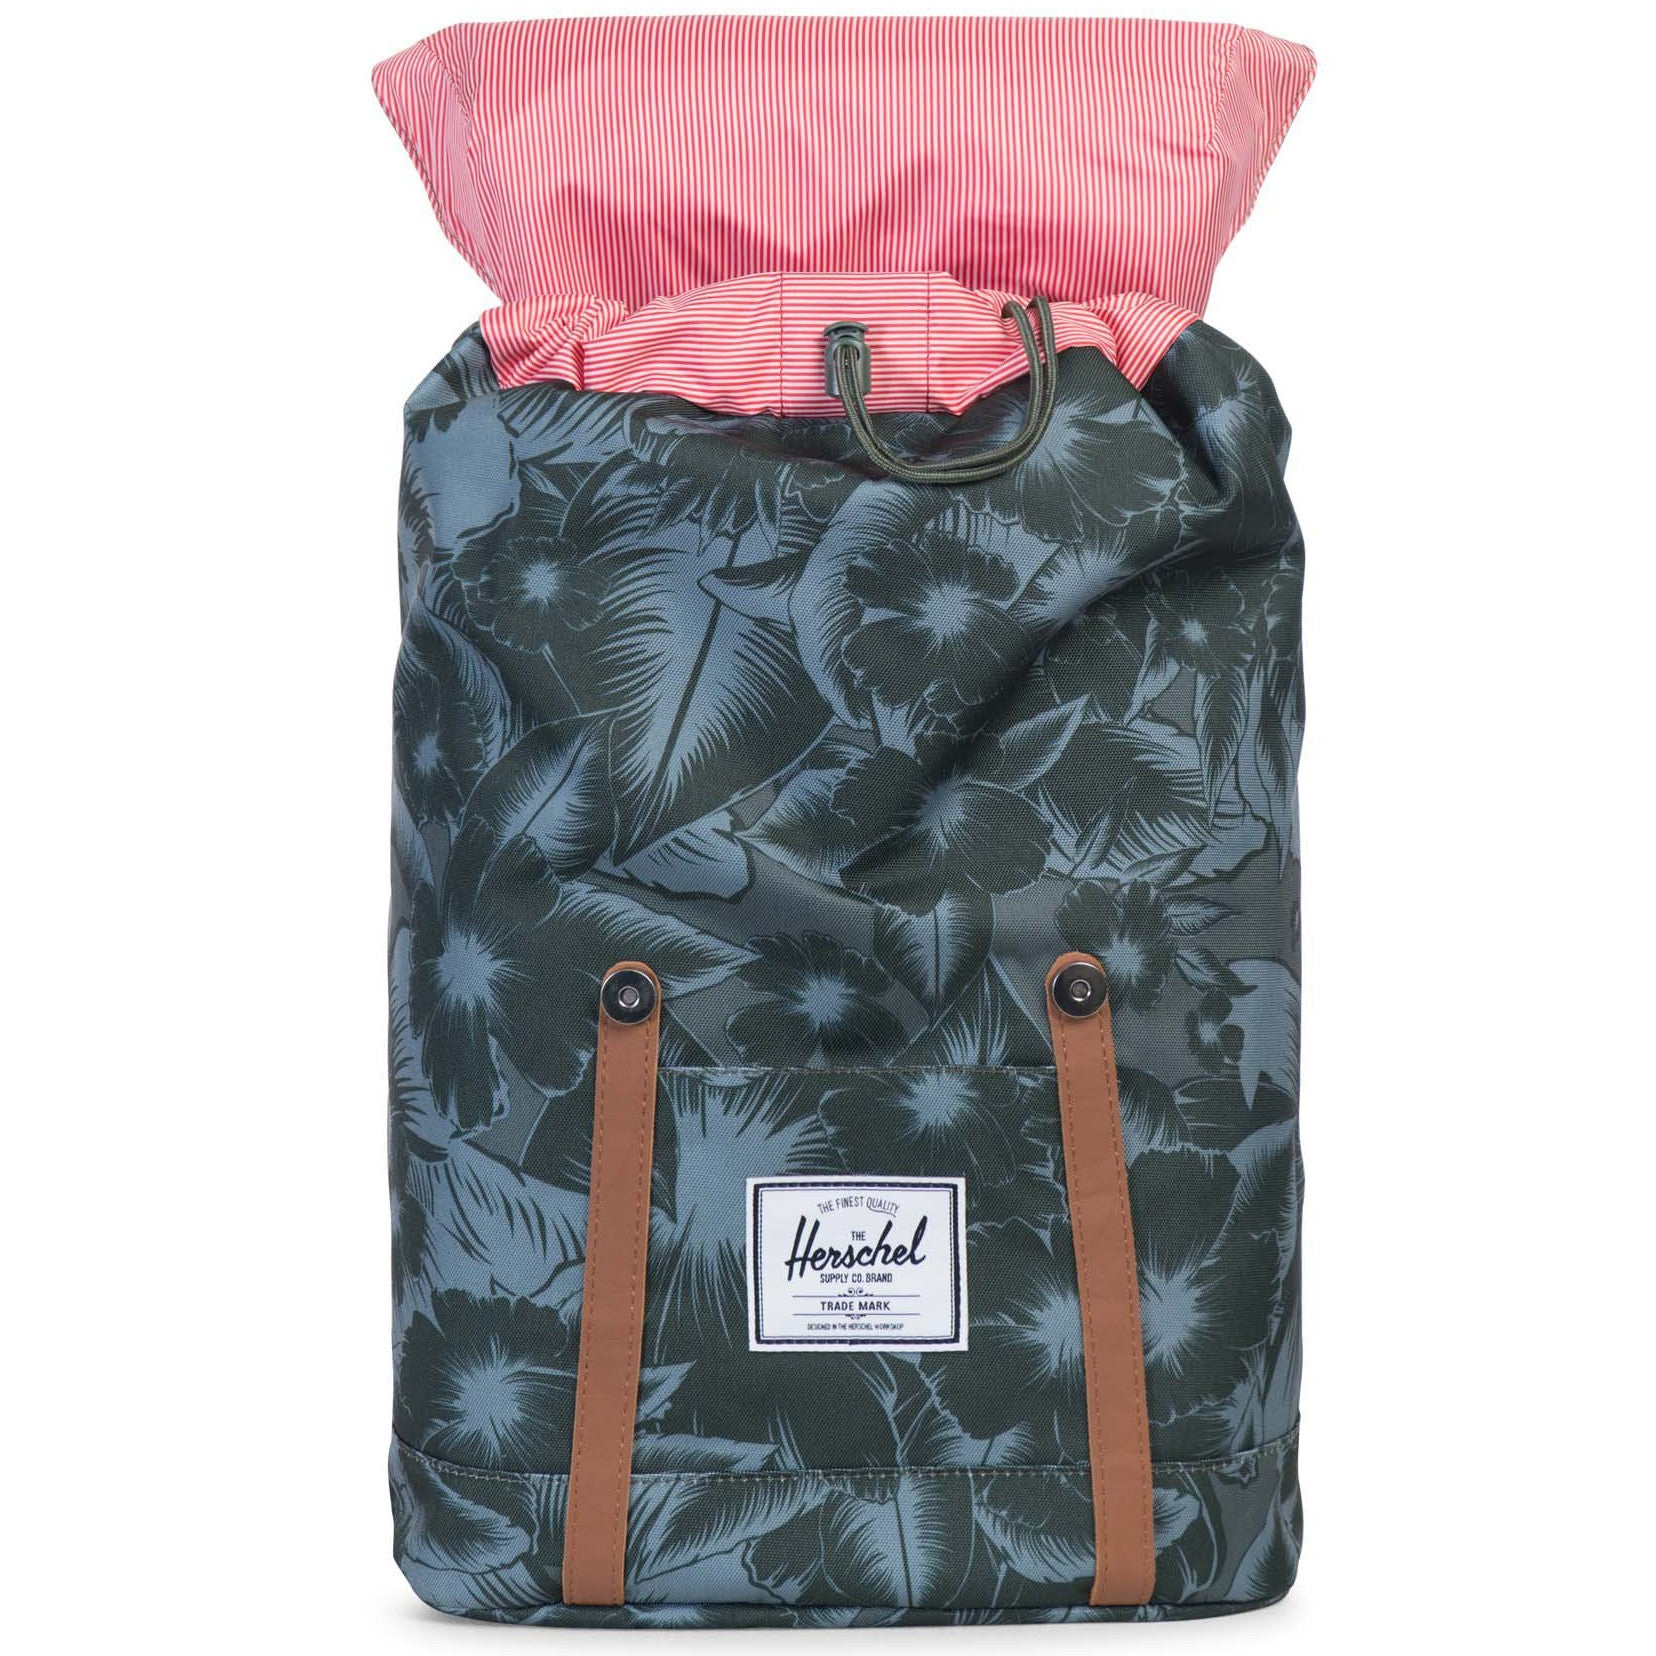 Retreat Backpack in Jungle Floral Green by Herschel Supply Co. - 2 e6925a0d7b